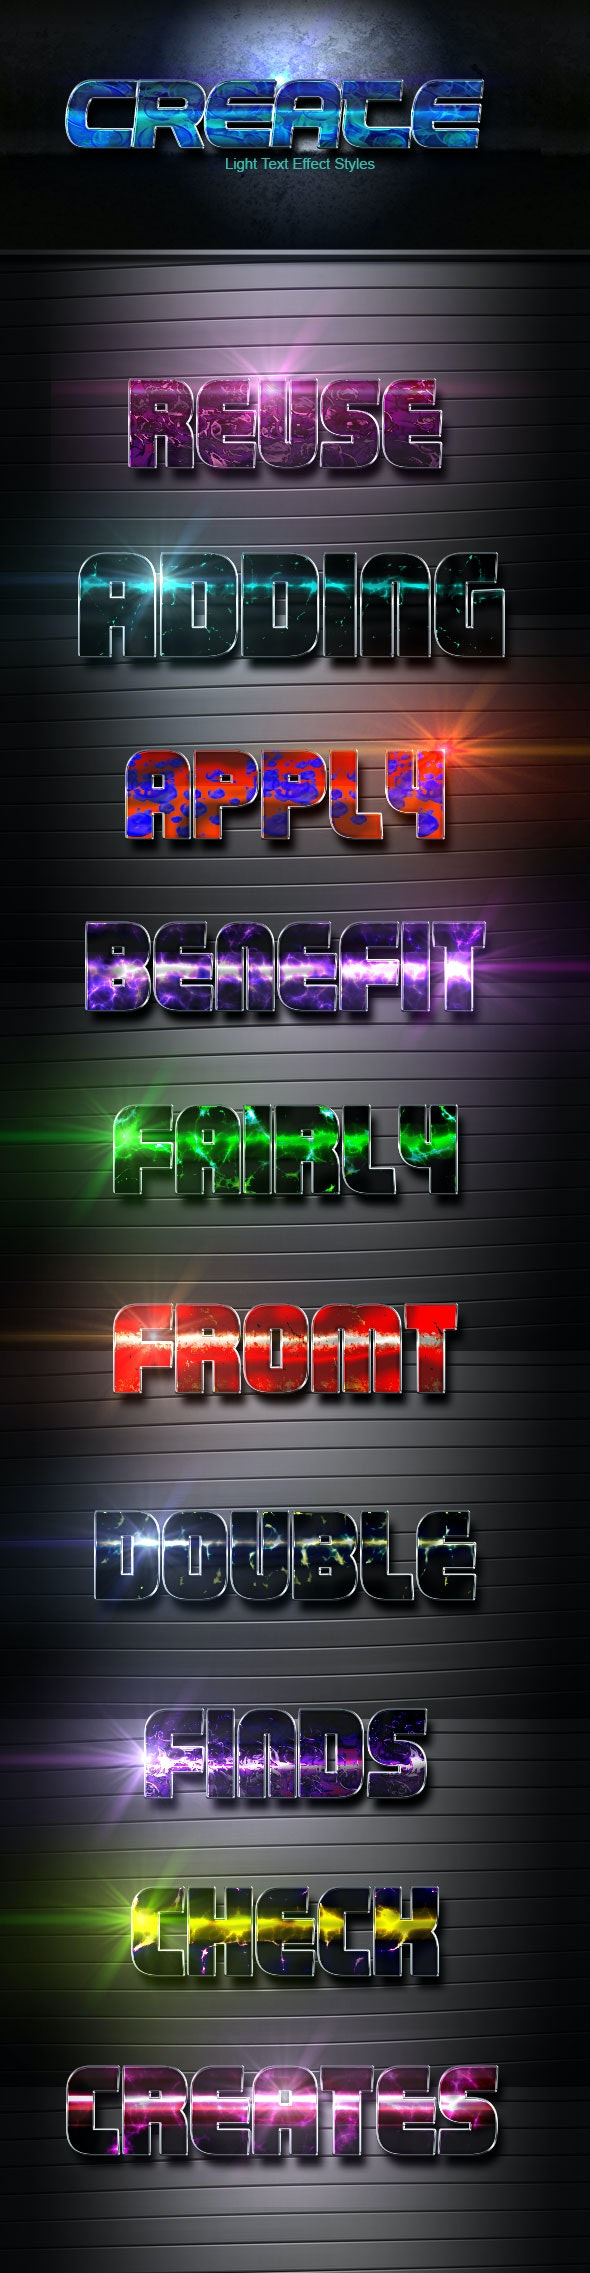 Create Vol 29 - Text Effects Actions